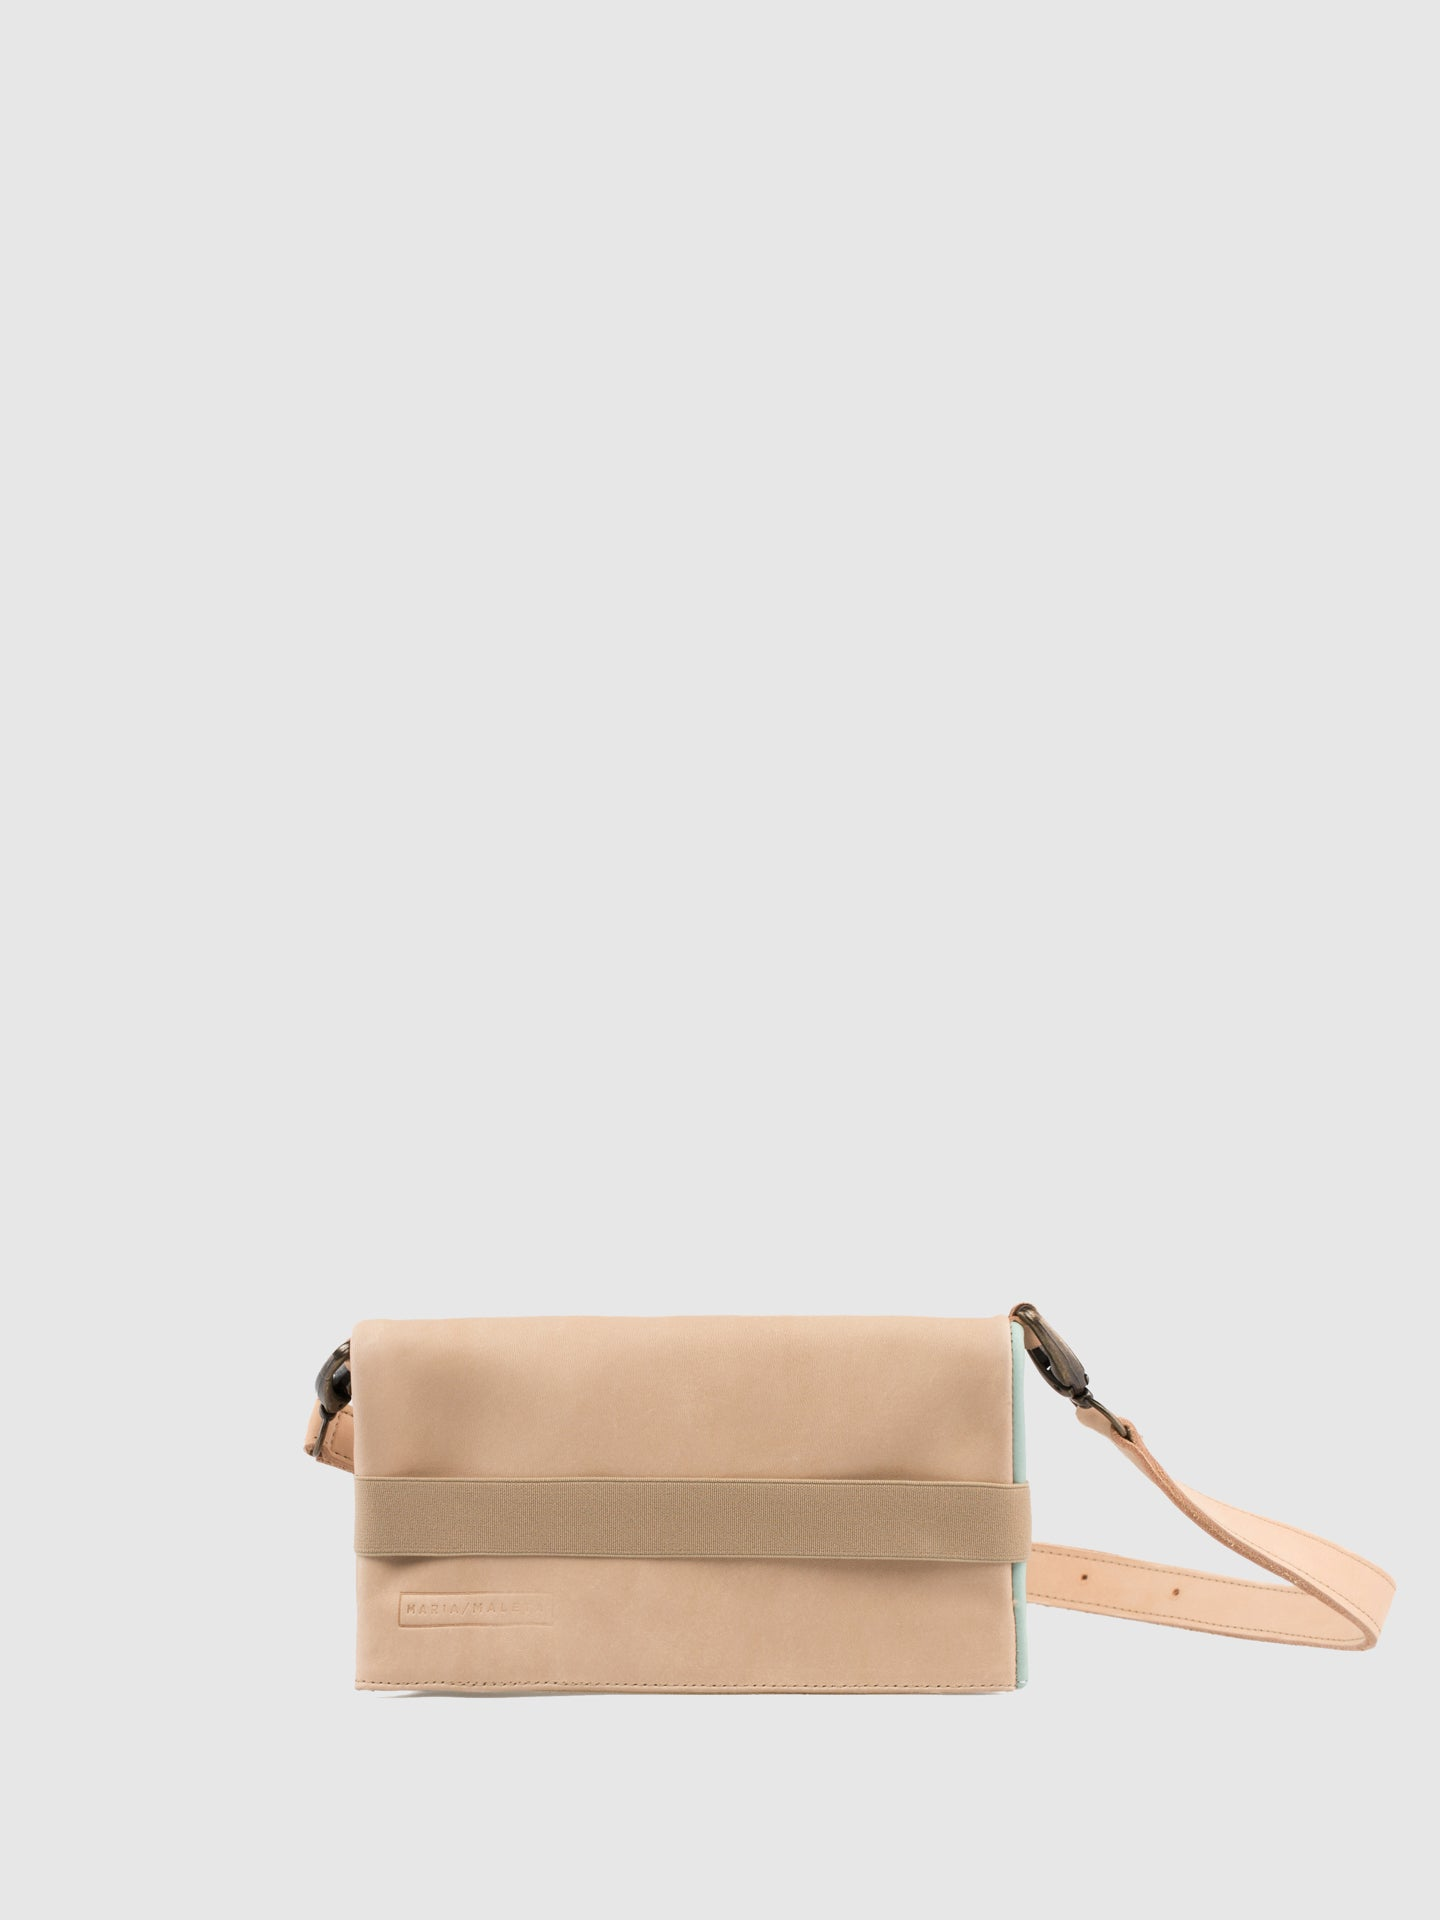 Maria Maleta LightBlue and Beige Reversible Bumbag Bag